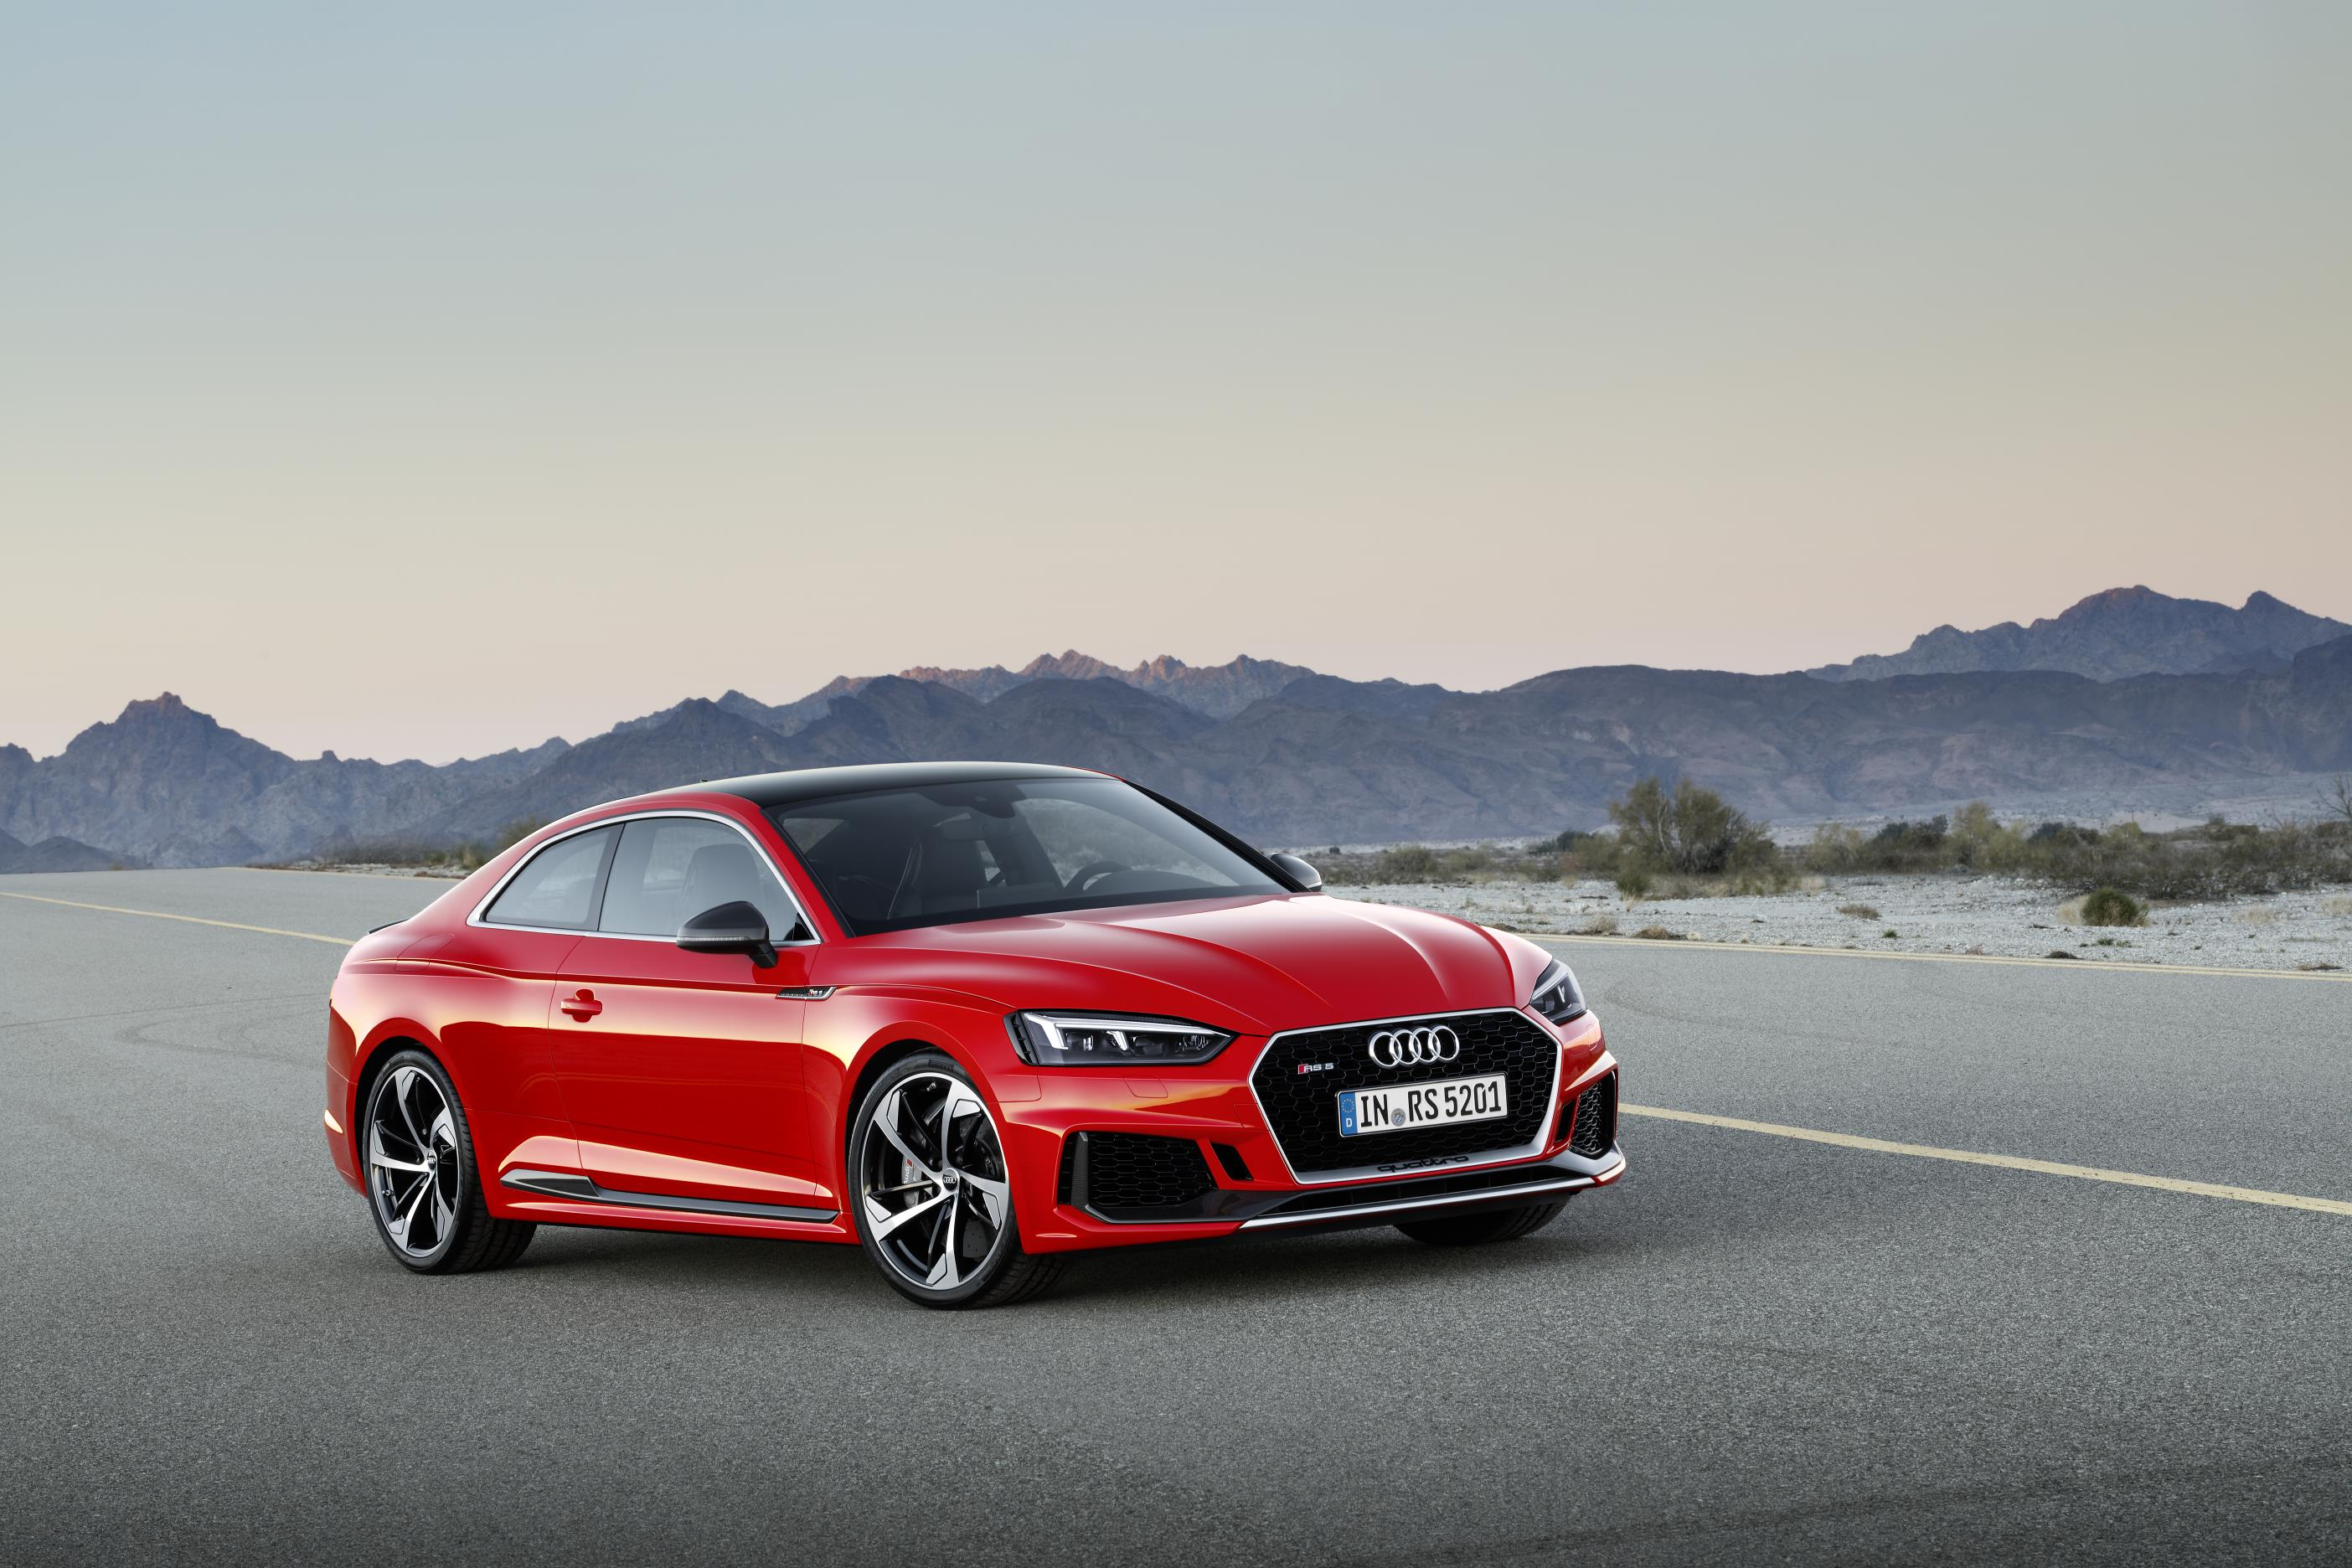 New Audi RS5 coupe impresses